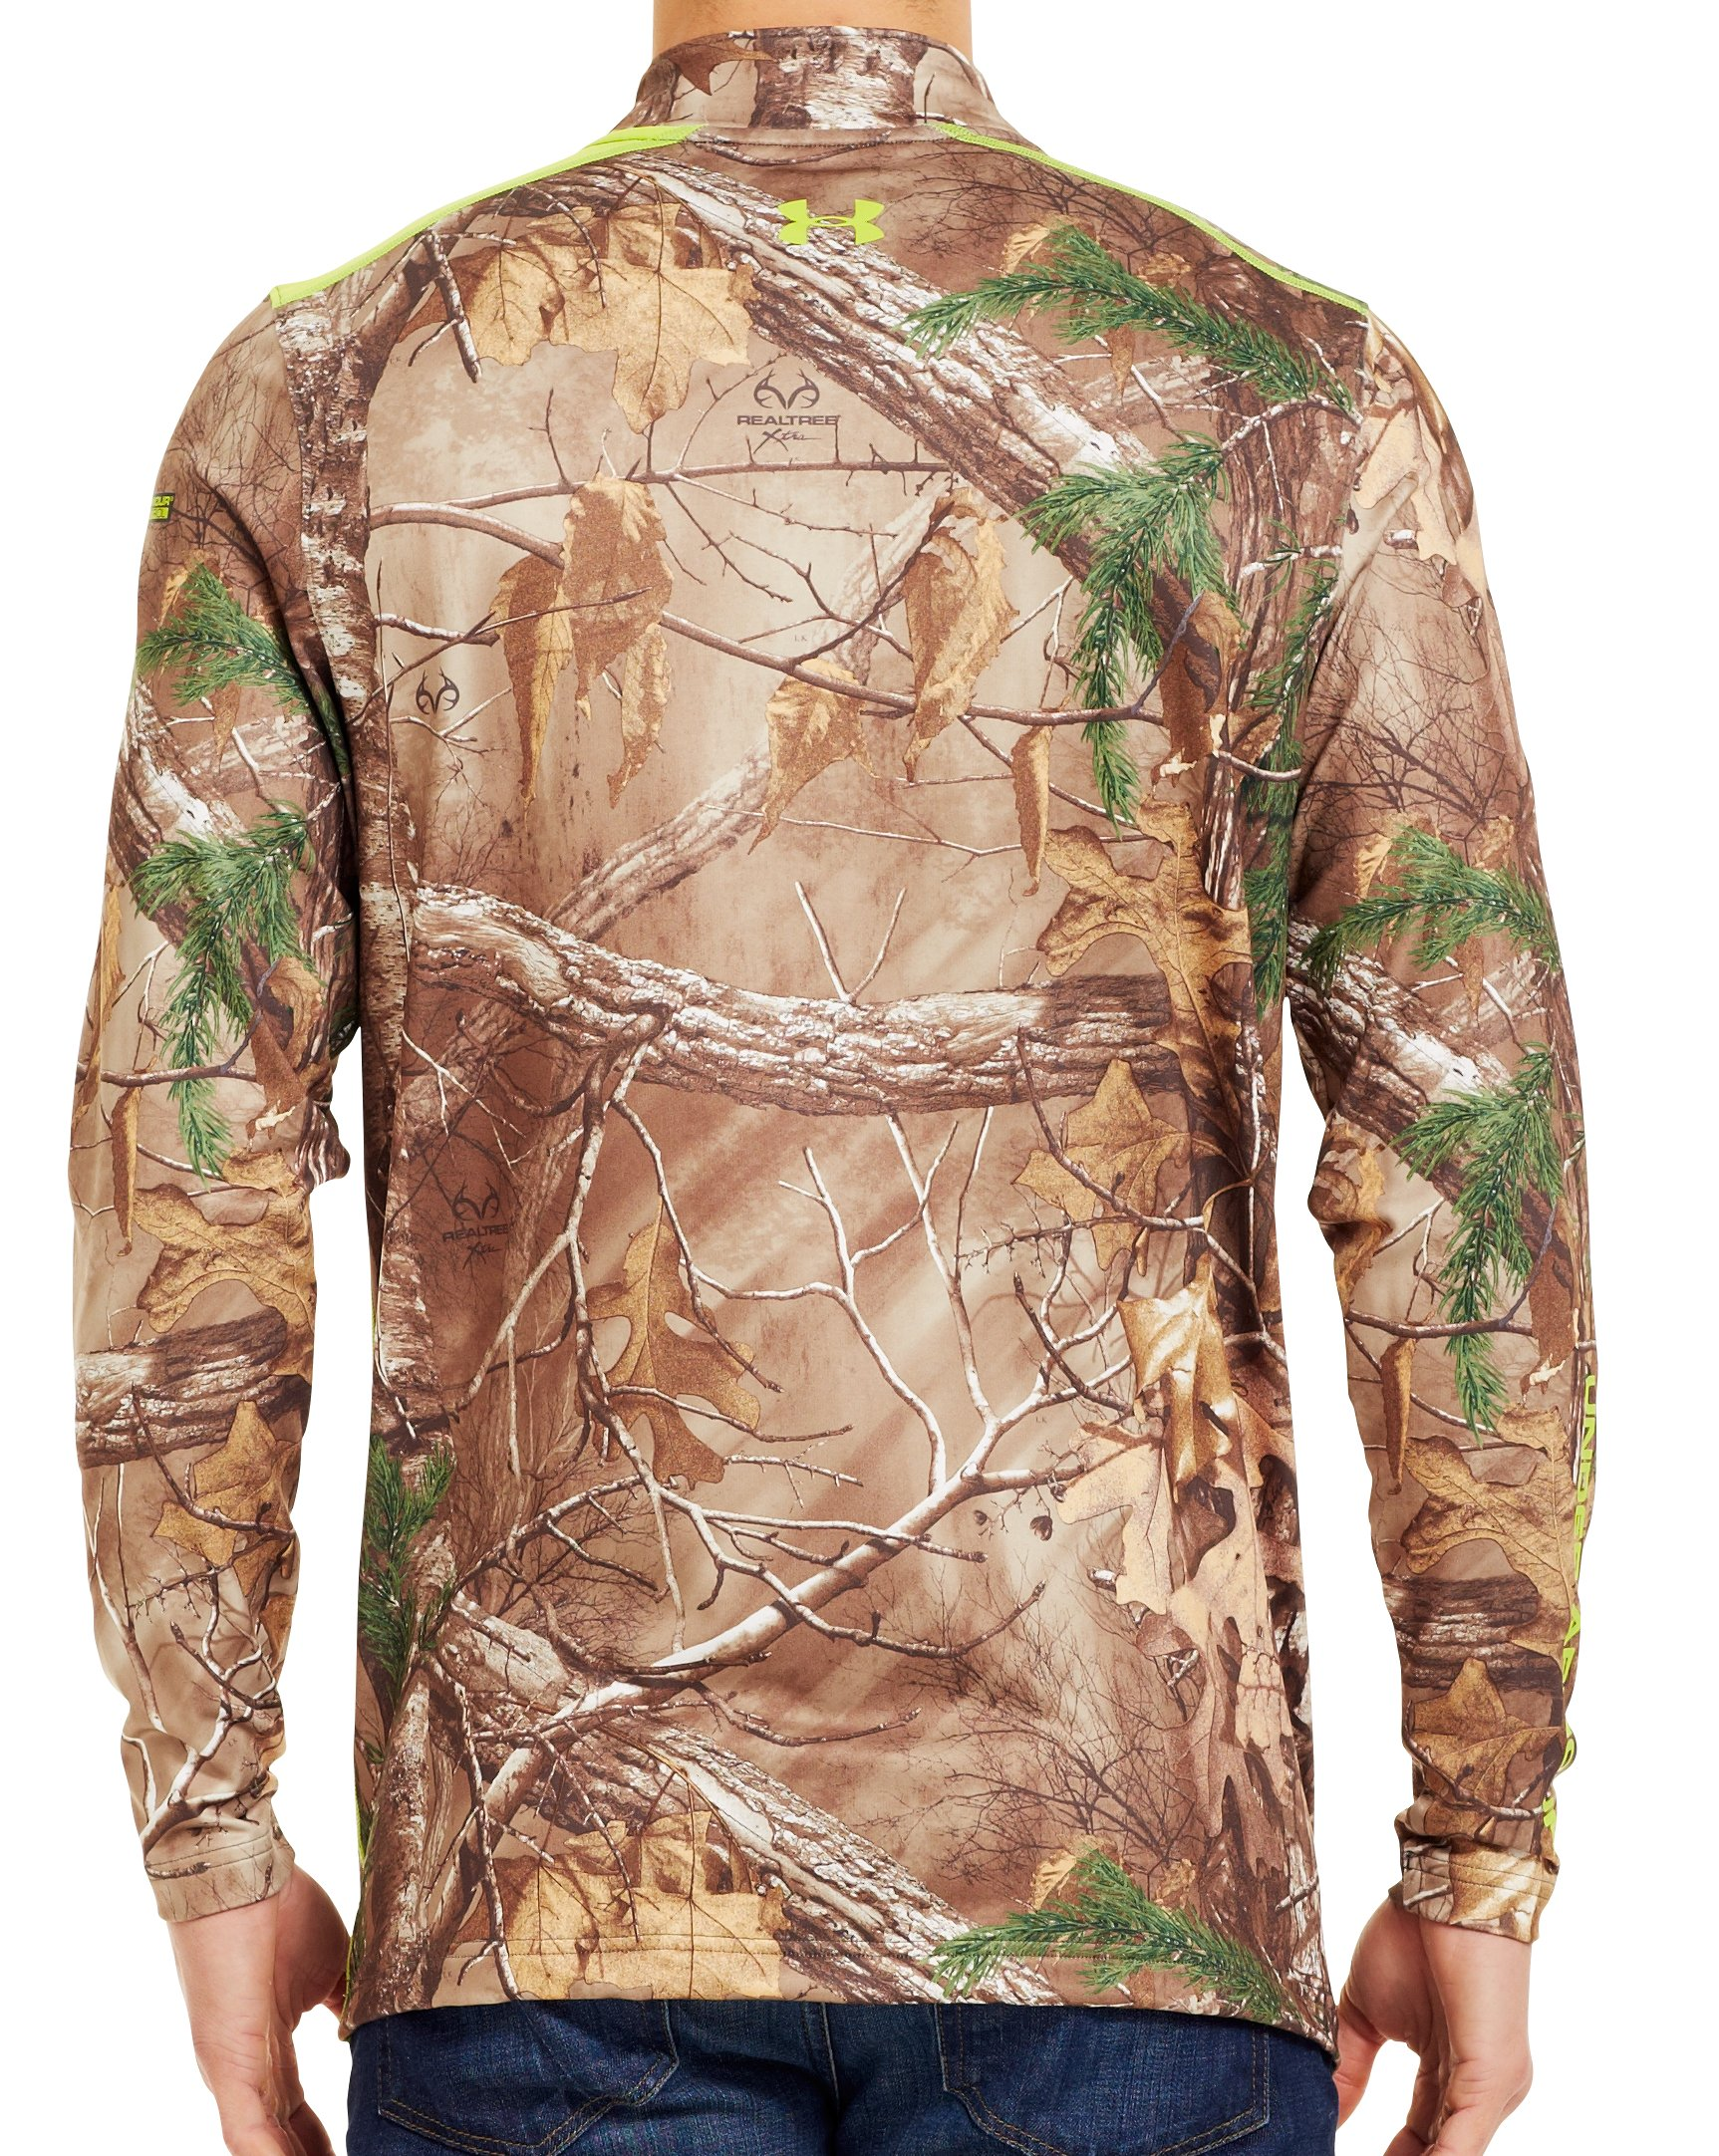 Men's ColdGear® Evo Scent Control Fitted ¼ Zip, REALTREE AP-XTRA, Back